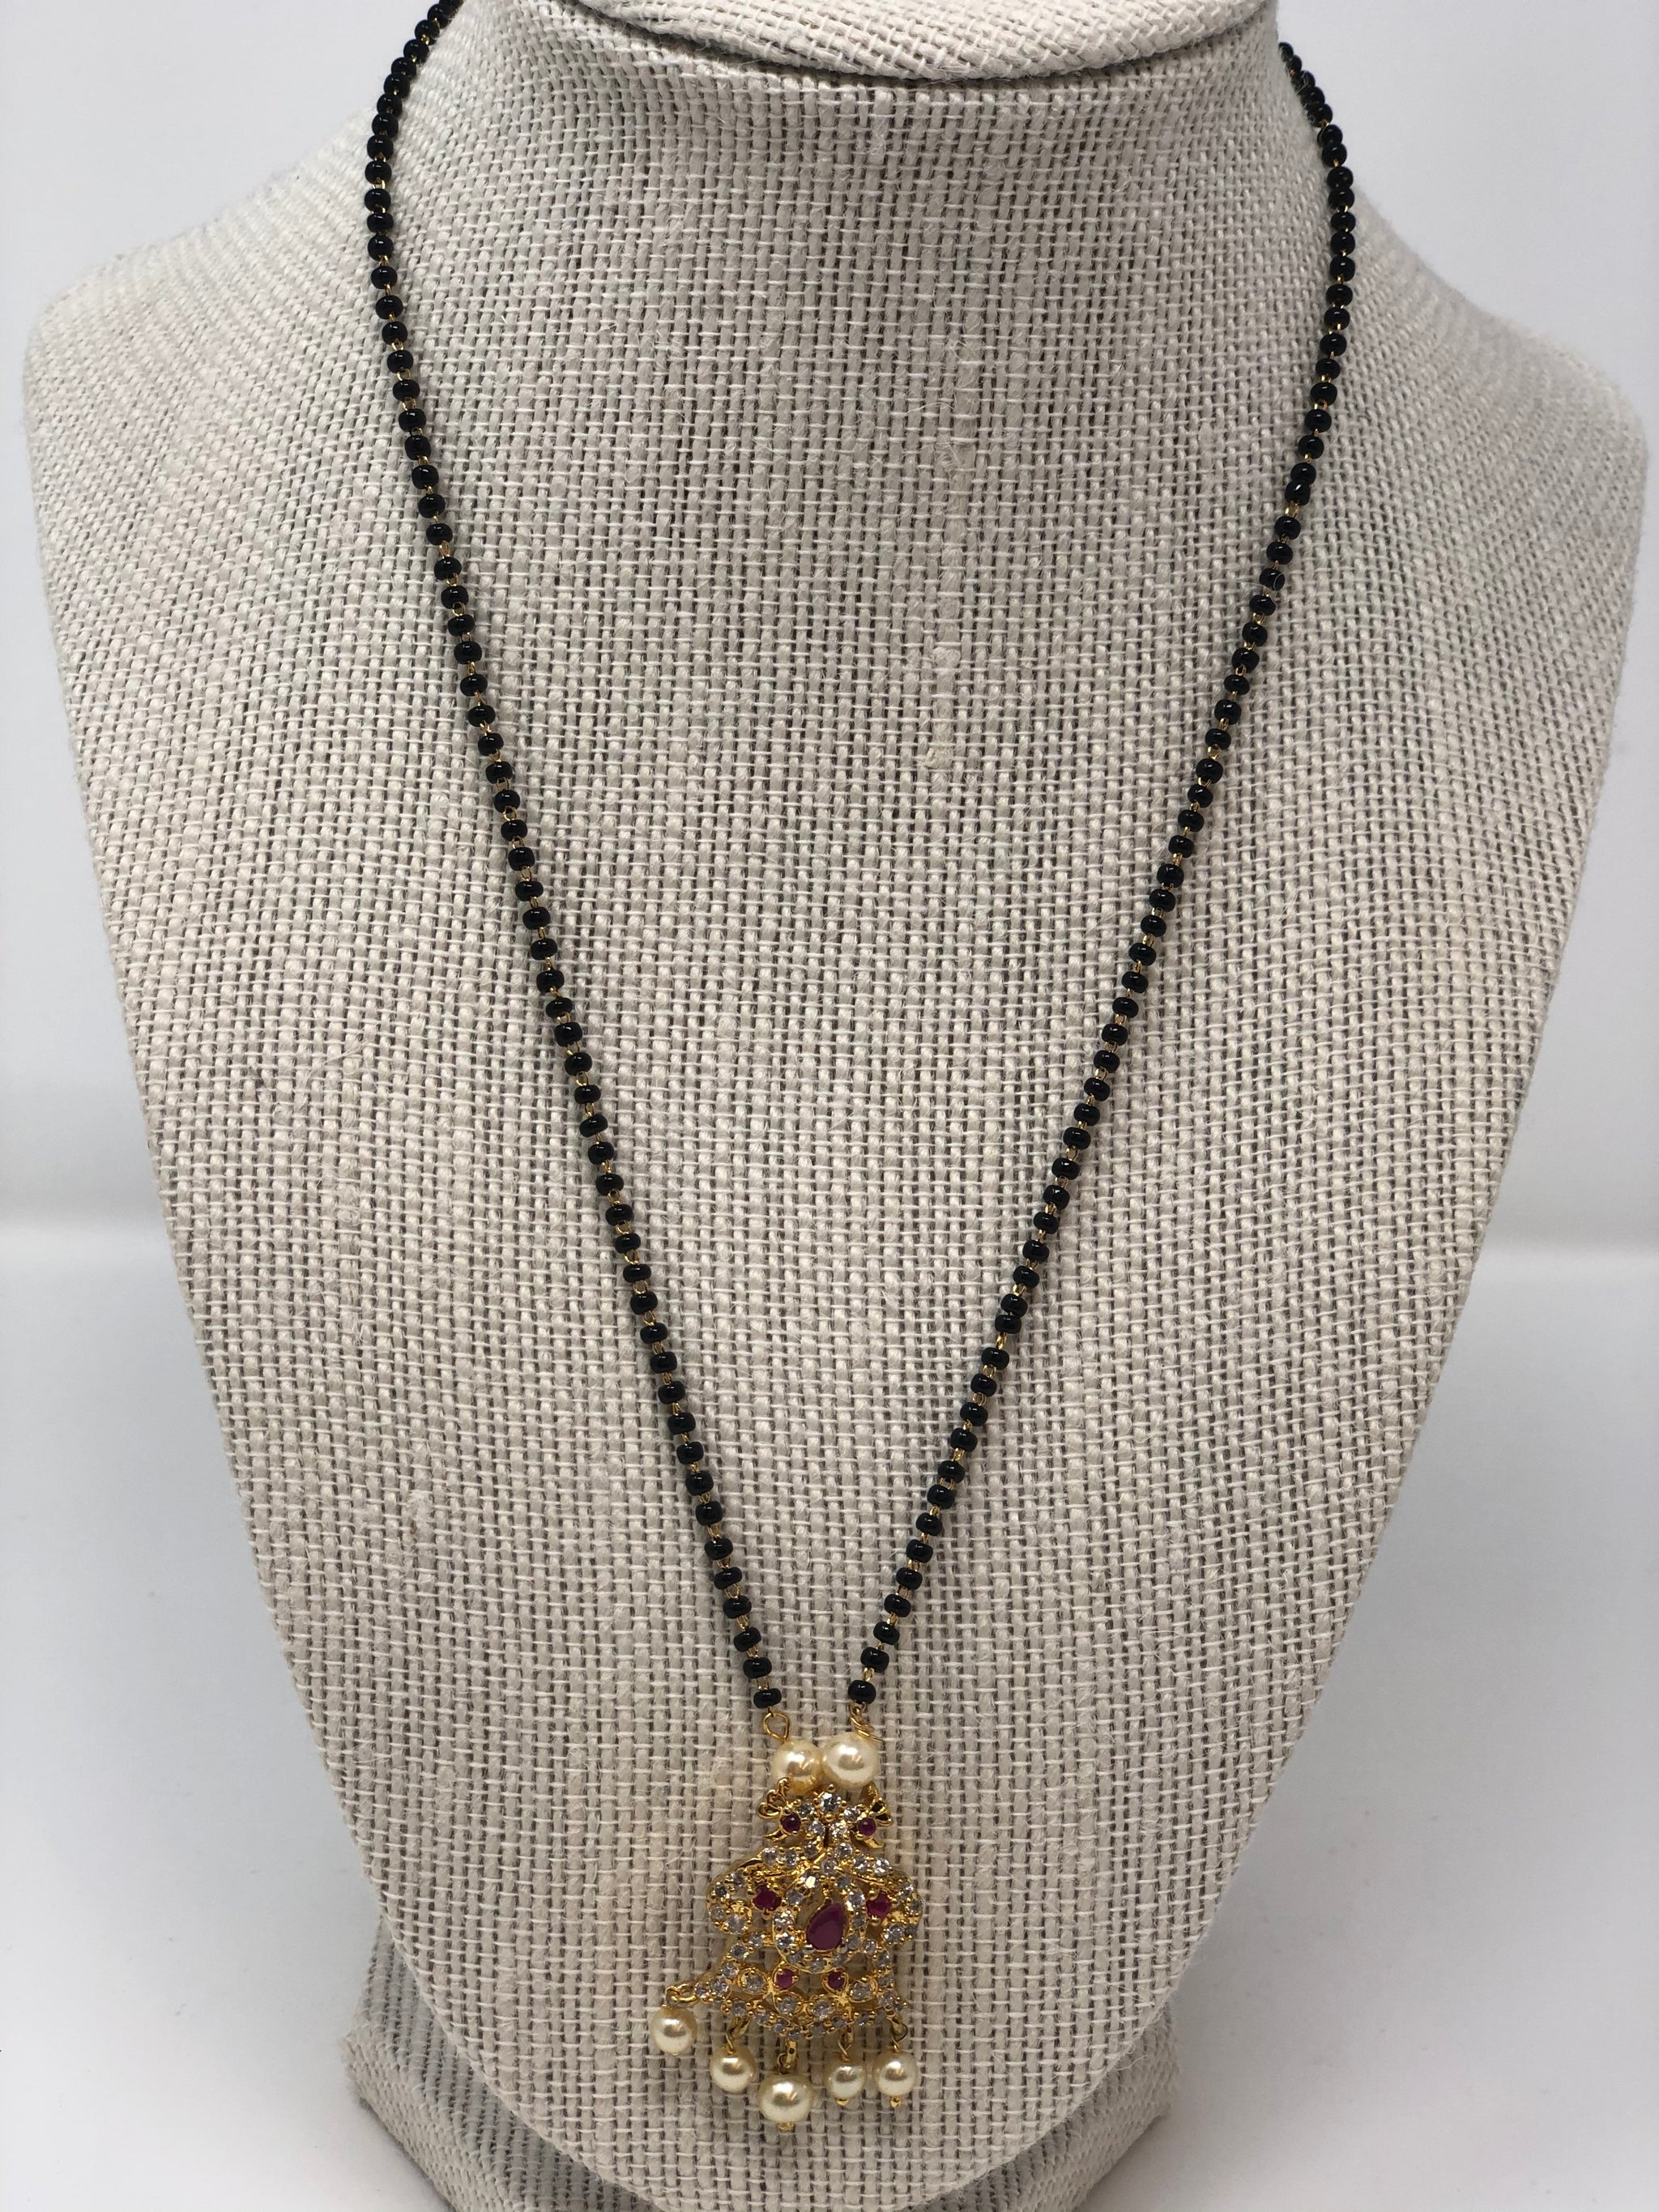 Black Beads Chain with Peacock Motif Locket